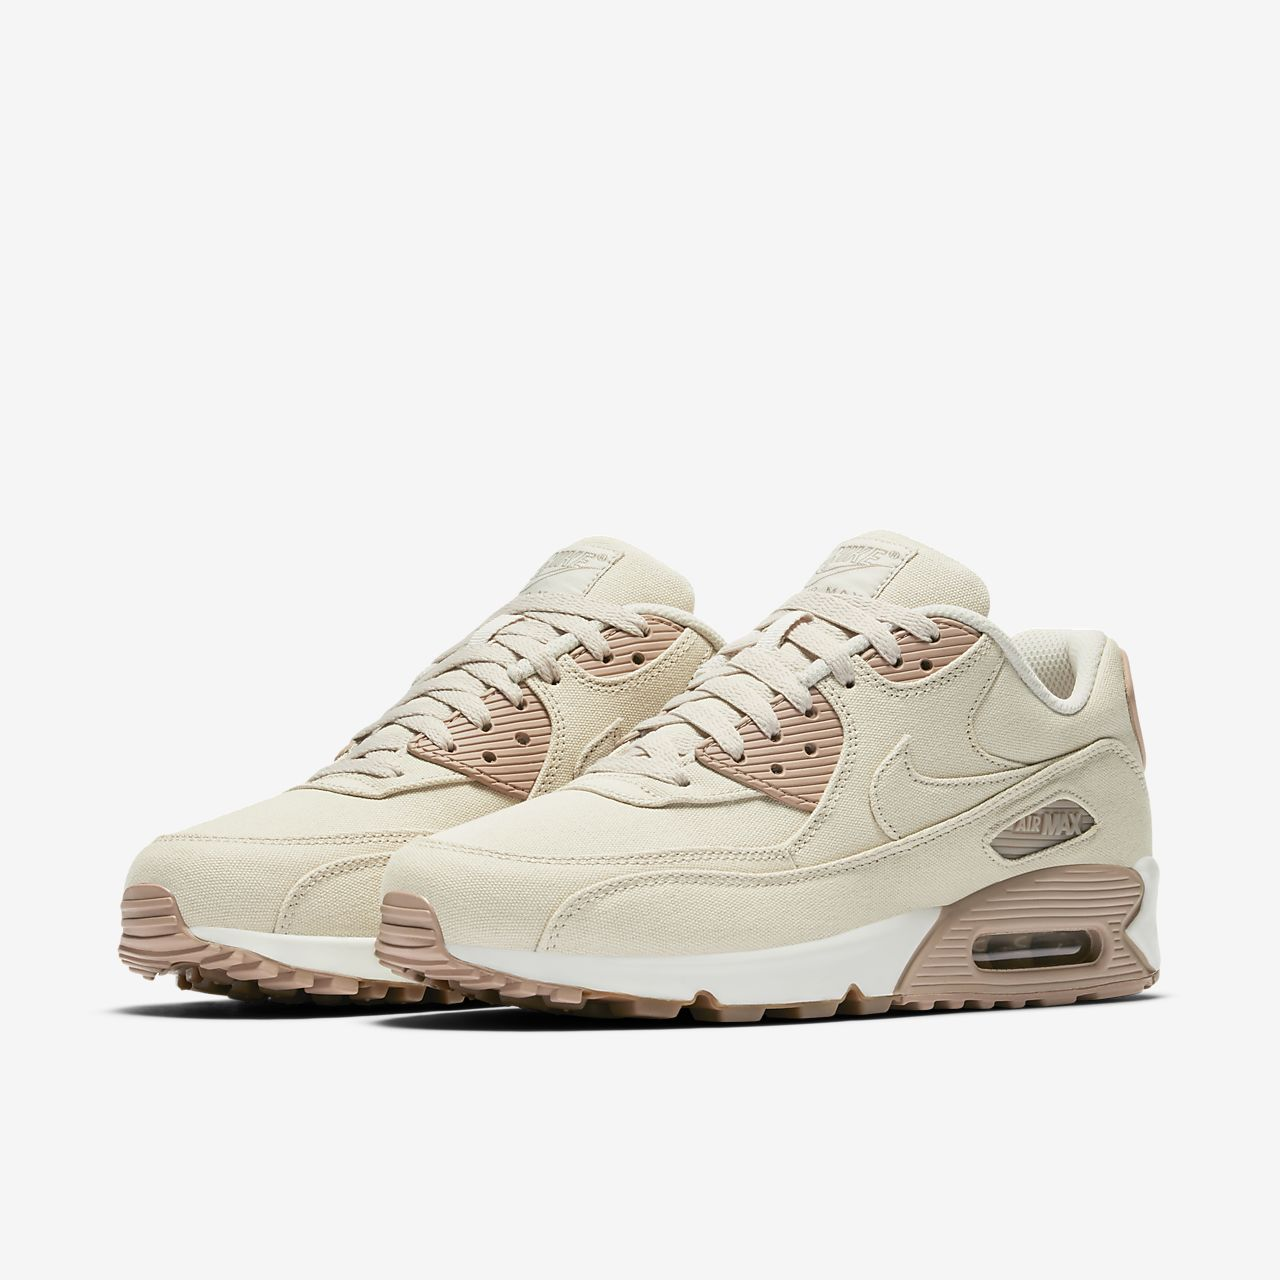 nike air max 90 sand colour nz